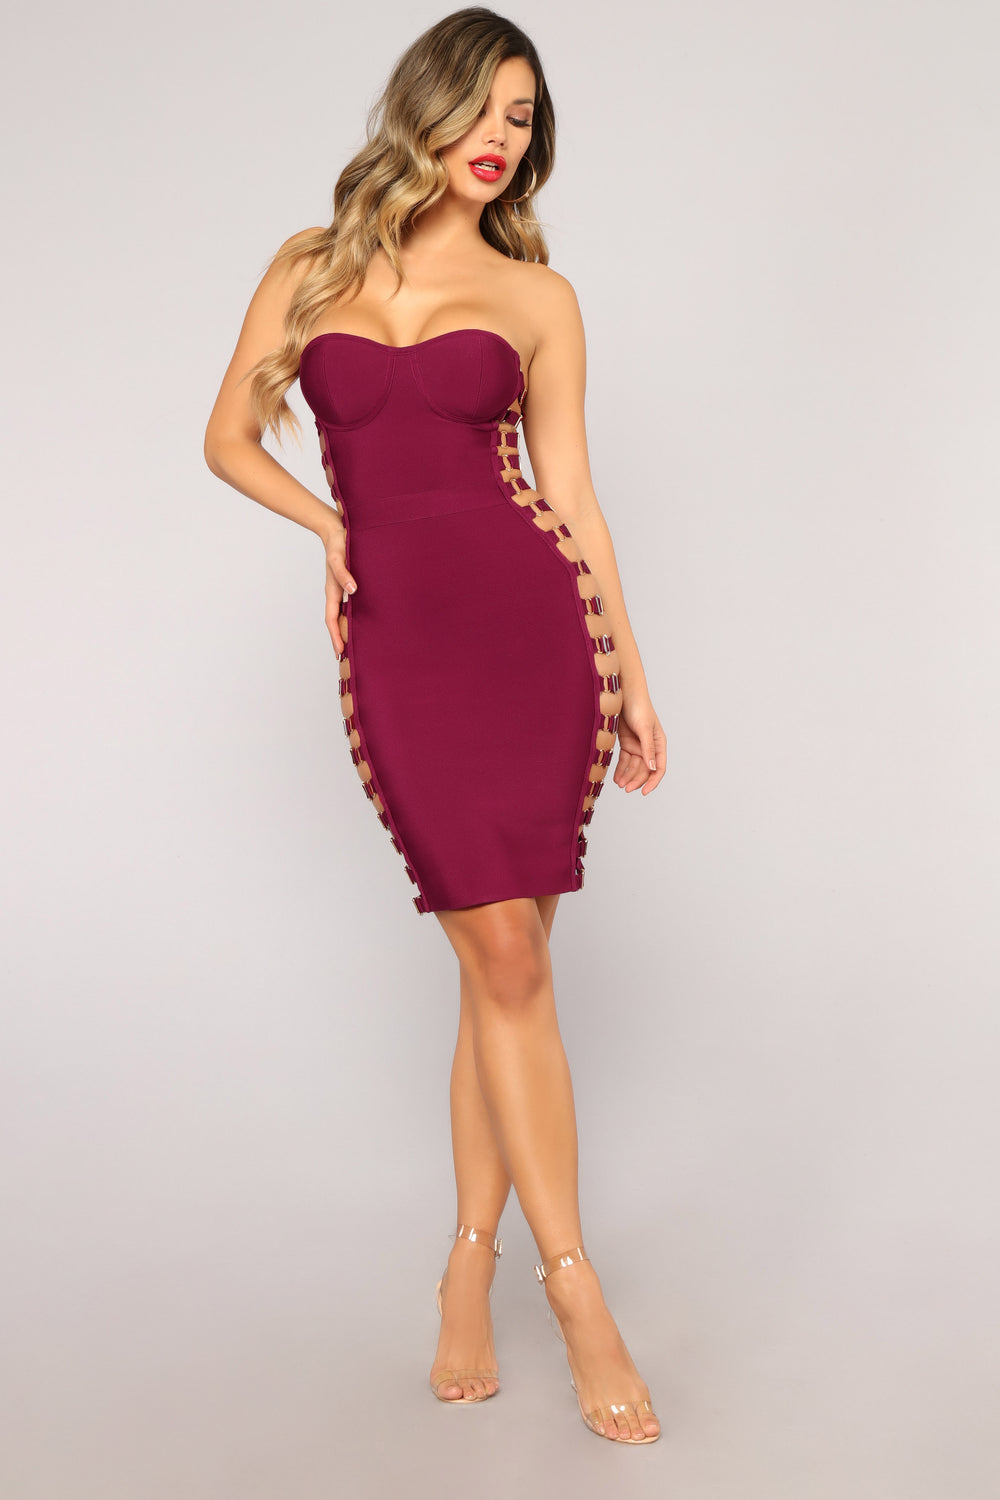 Can't Remember Bandage Dress - Burgundy